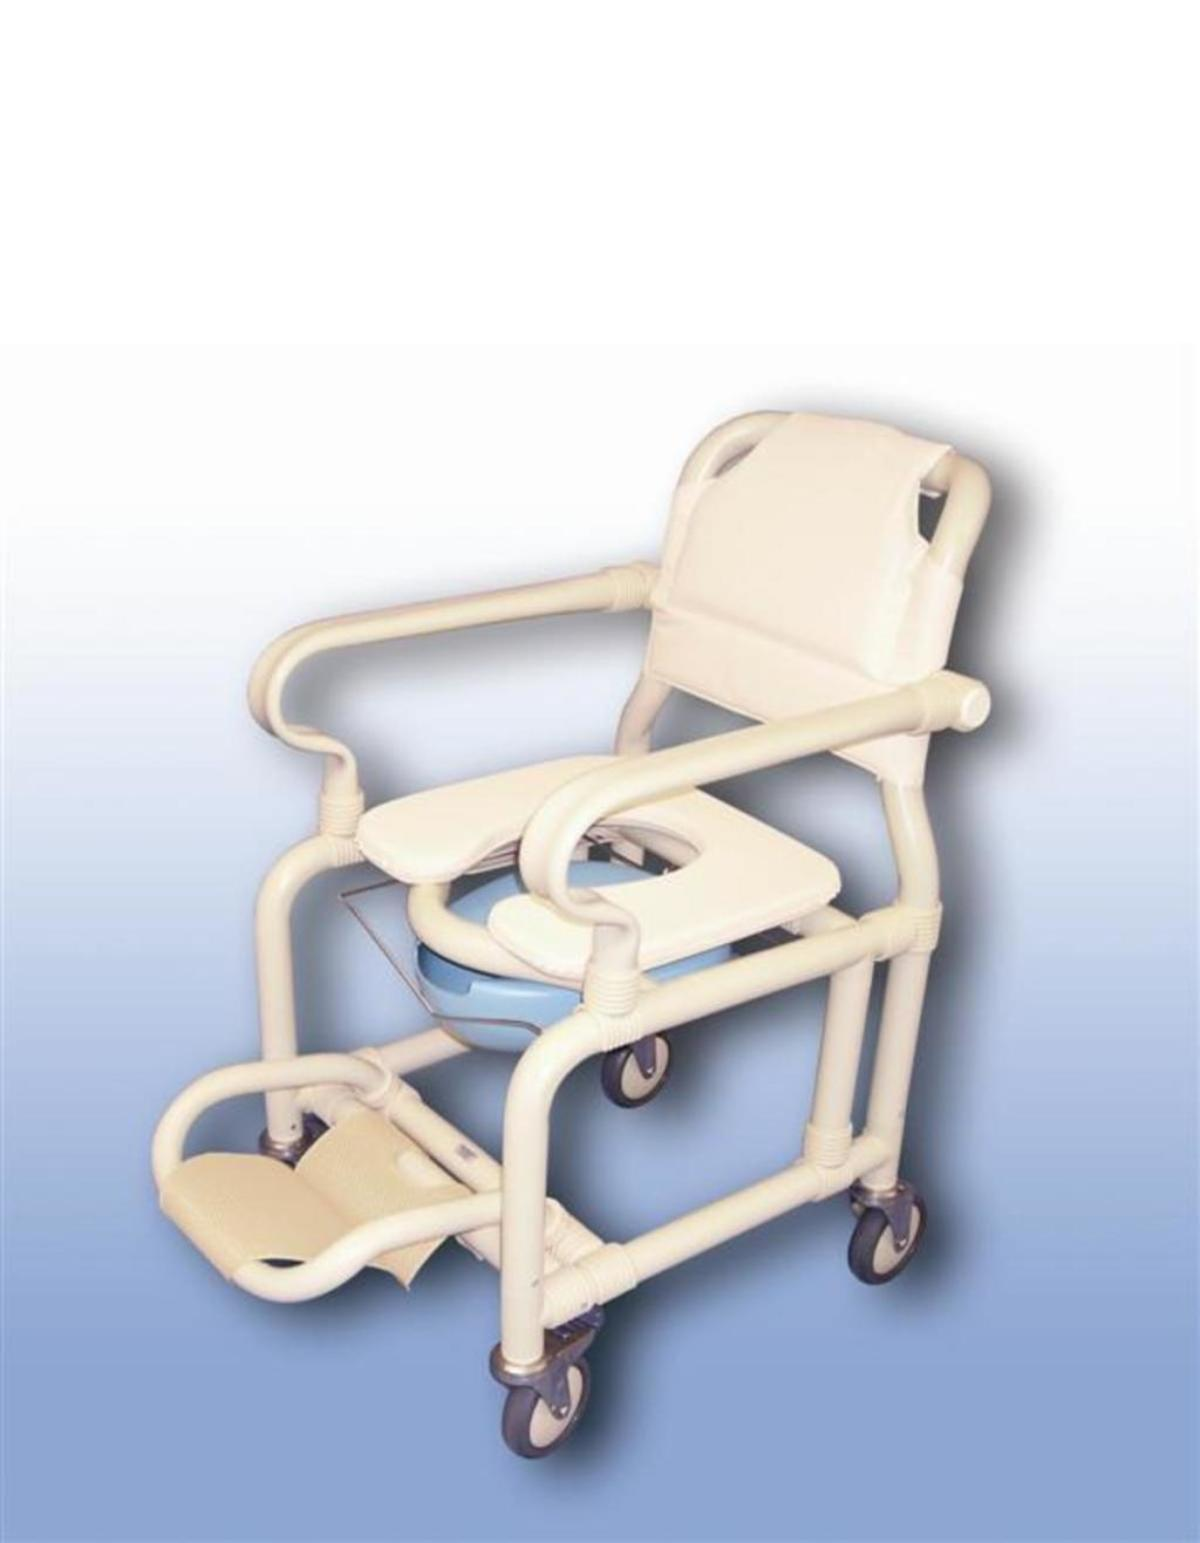 Deluxe Mobile Shower Chair With Pan Pan Holder